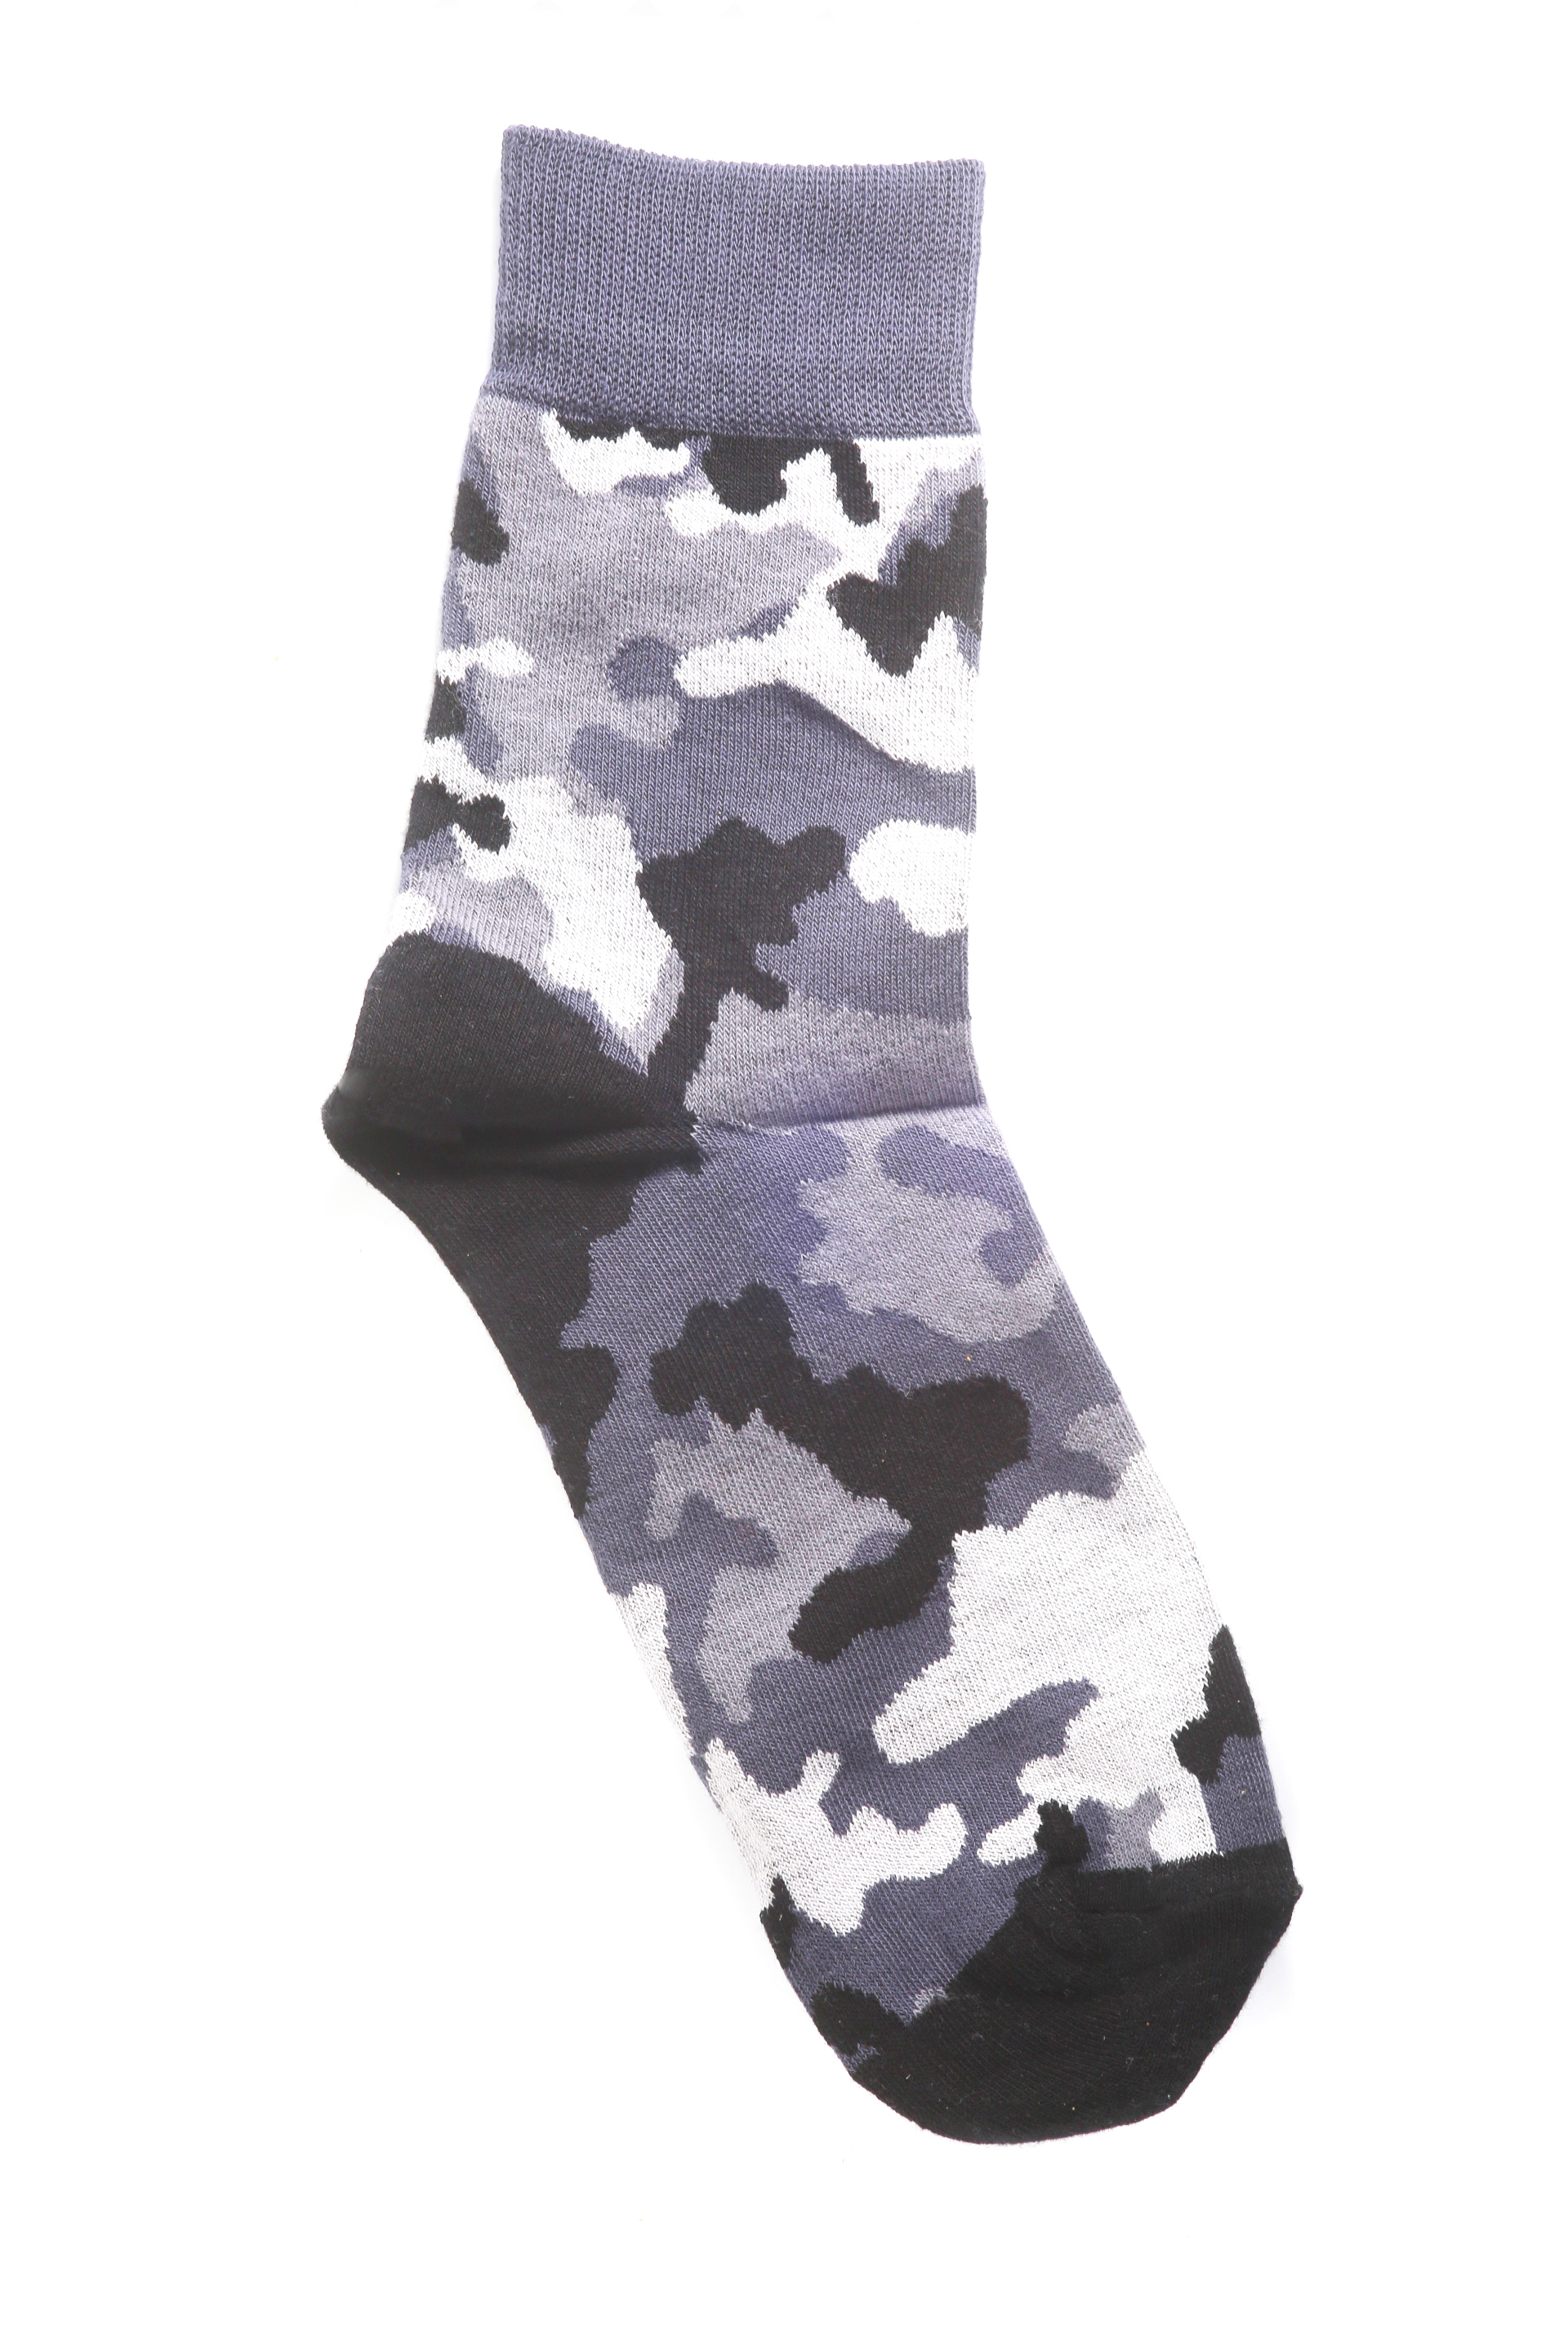 Bespoke military socks